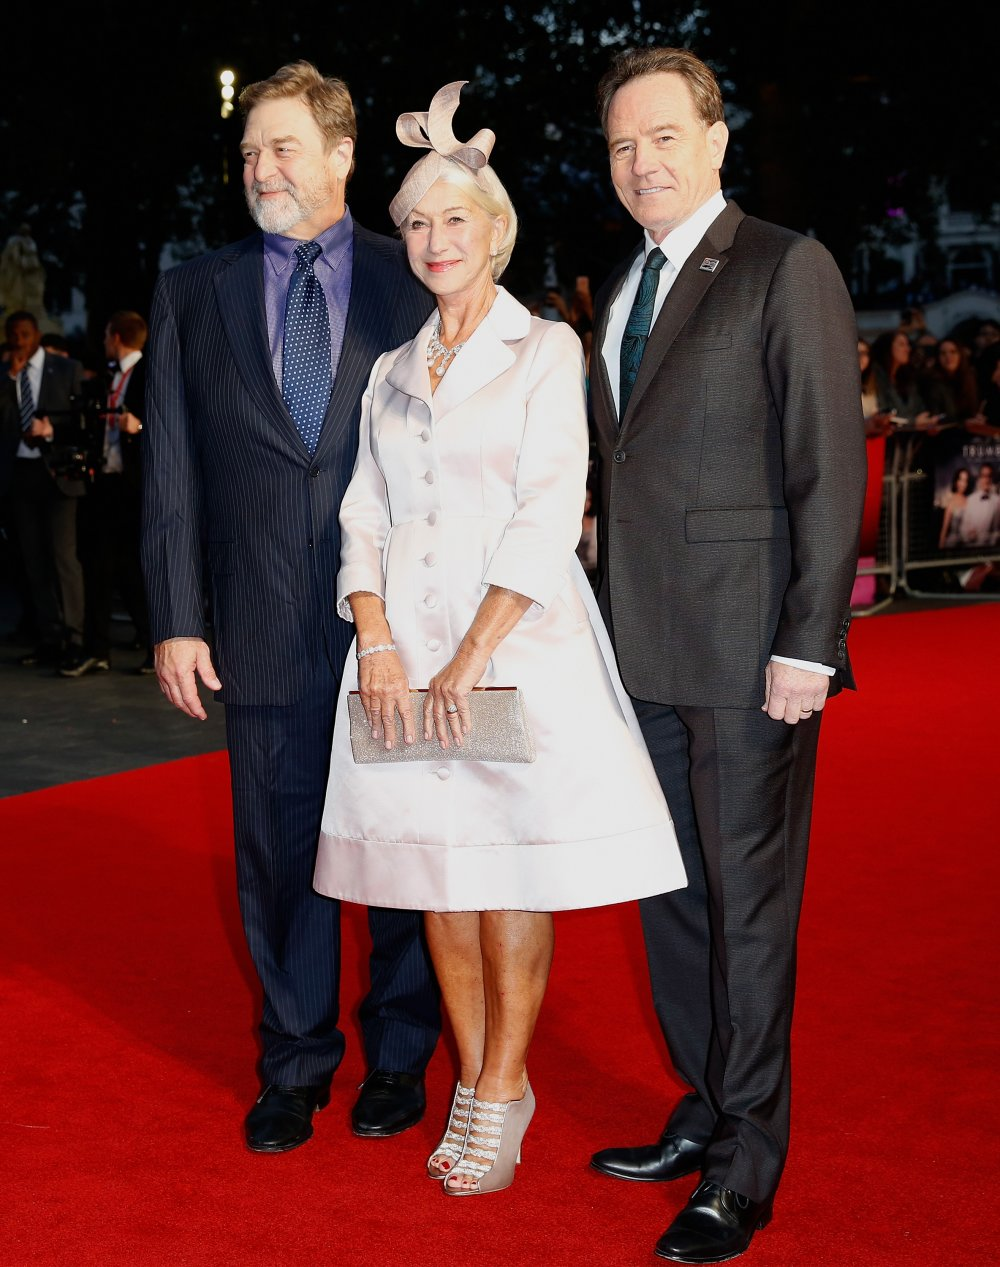 Actors John Goodman, Helen Mirren and Bryan Cranston attend the Trumbo premiere during the BFI London Film Festival at the Odeon Leicester Square